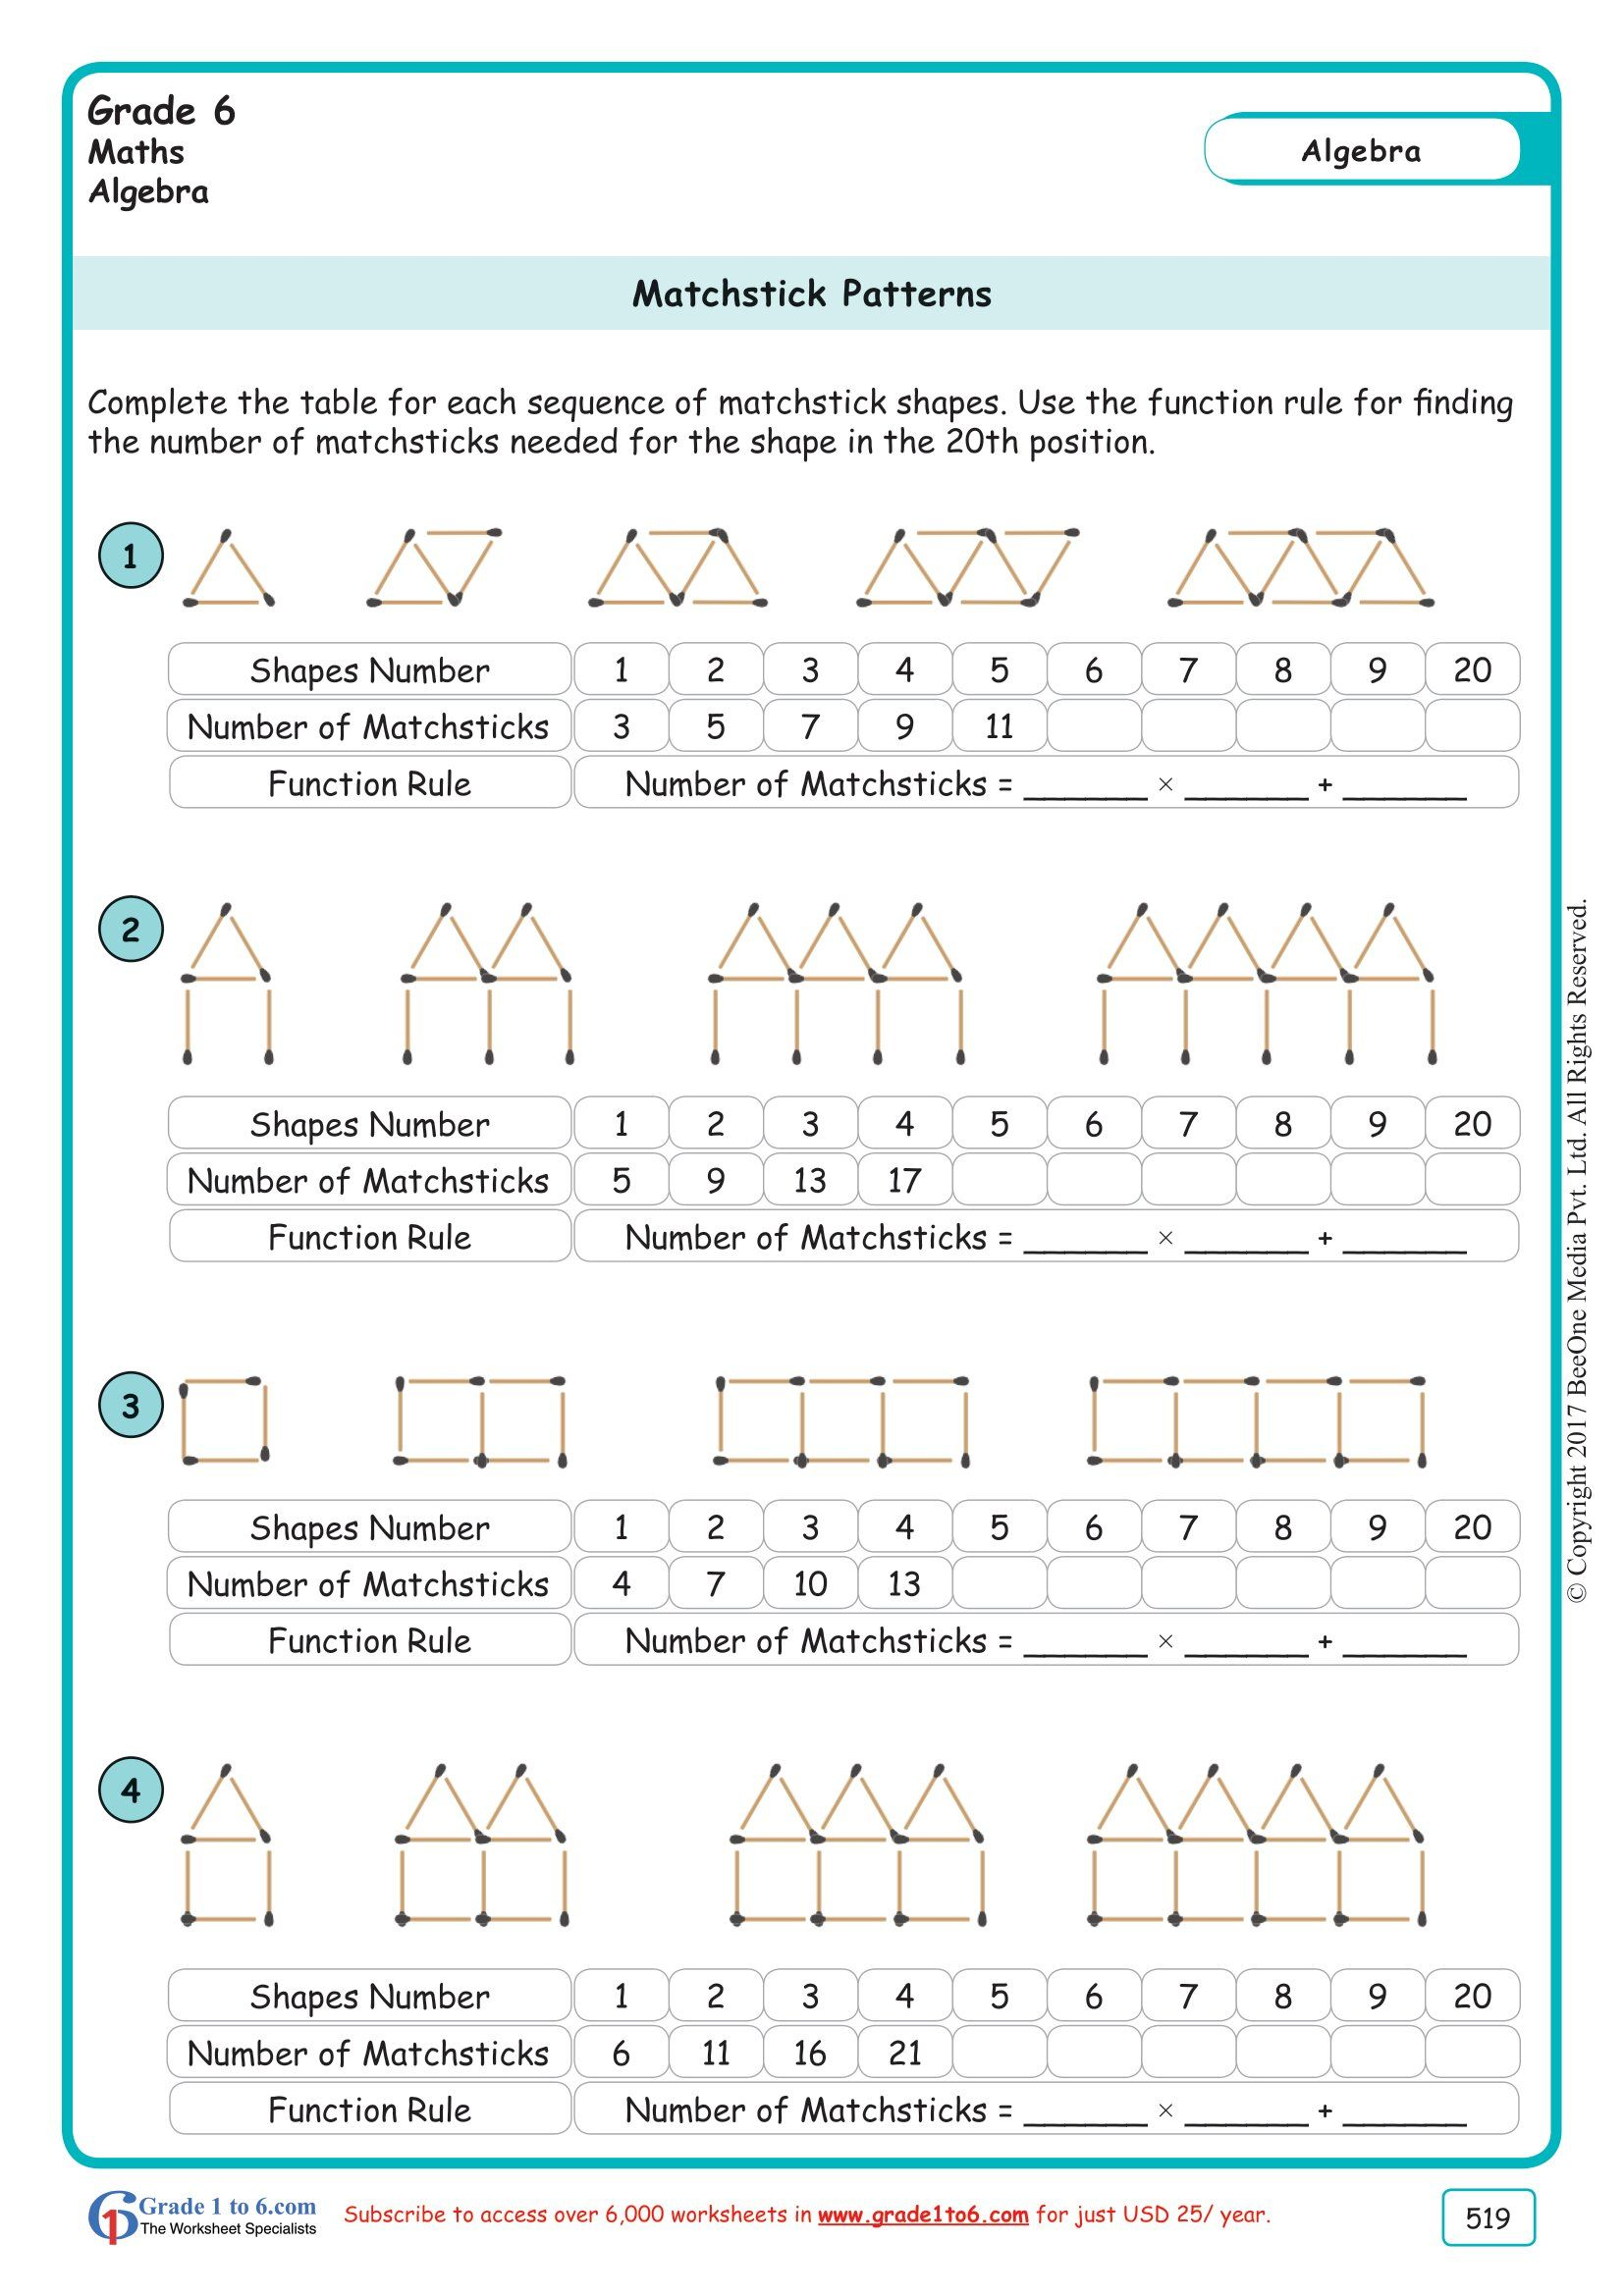 Grade 6  Class Six Matchstick Patterns Worksheets  www.grade1to6.com    Pattern worksheet [ 2339 x 1654 Pixel ]